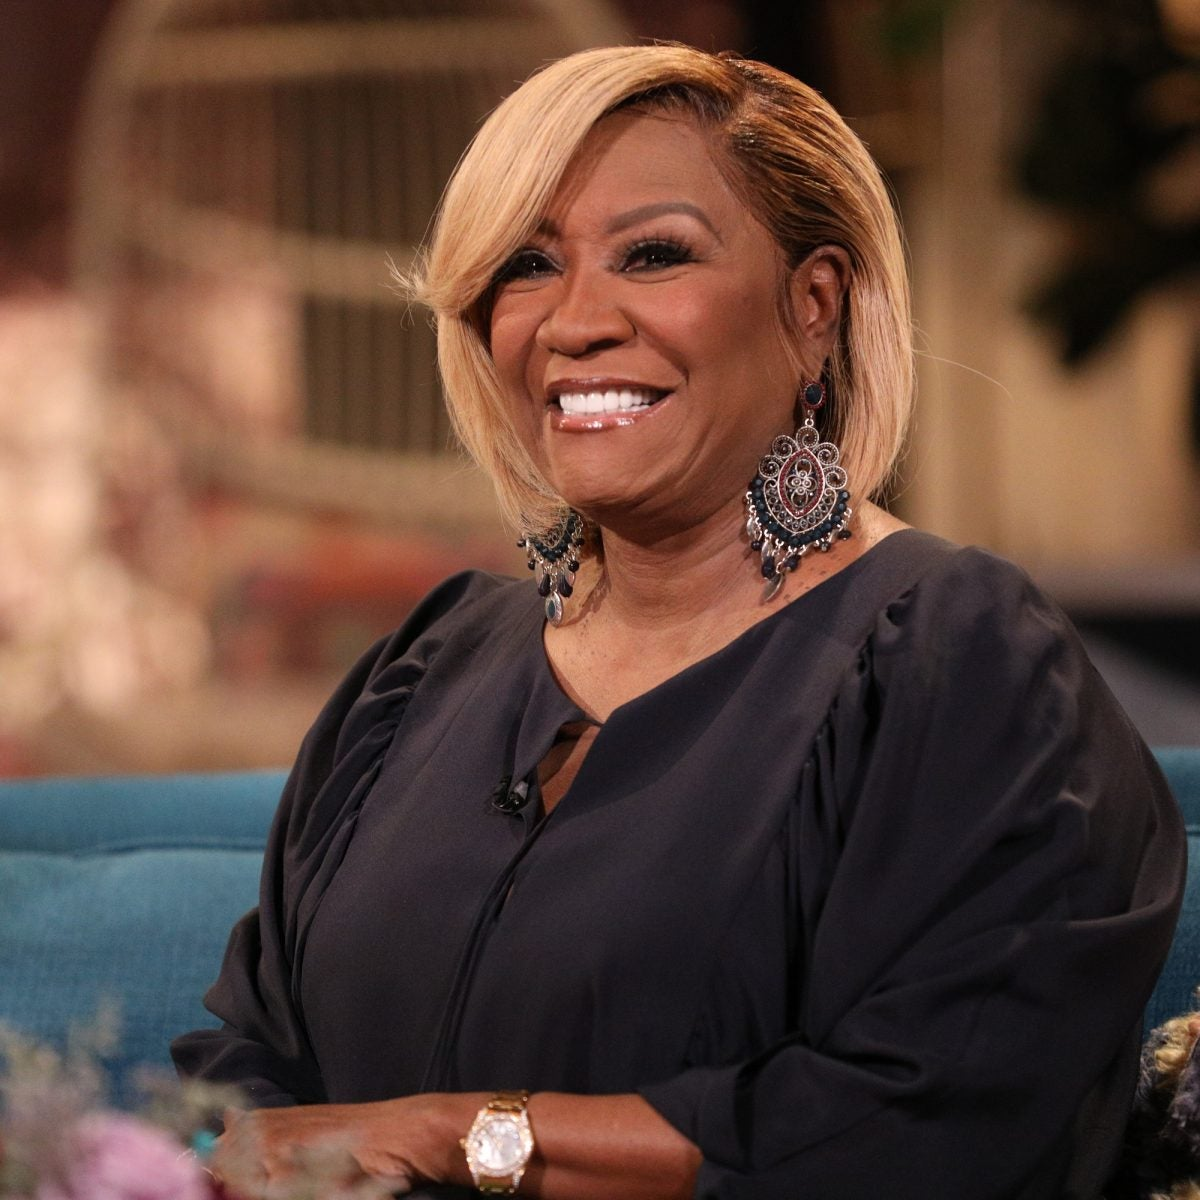 Patti LaBelle Partners with McBride Sisters and Simon & Schuster for Black Girl Magic Wine and Book Club